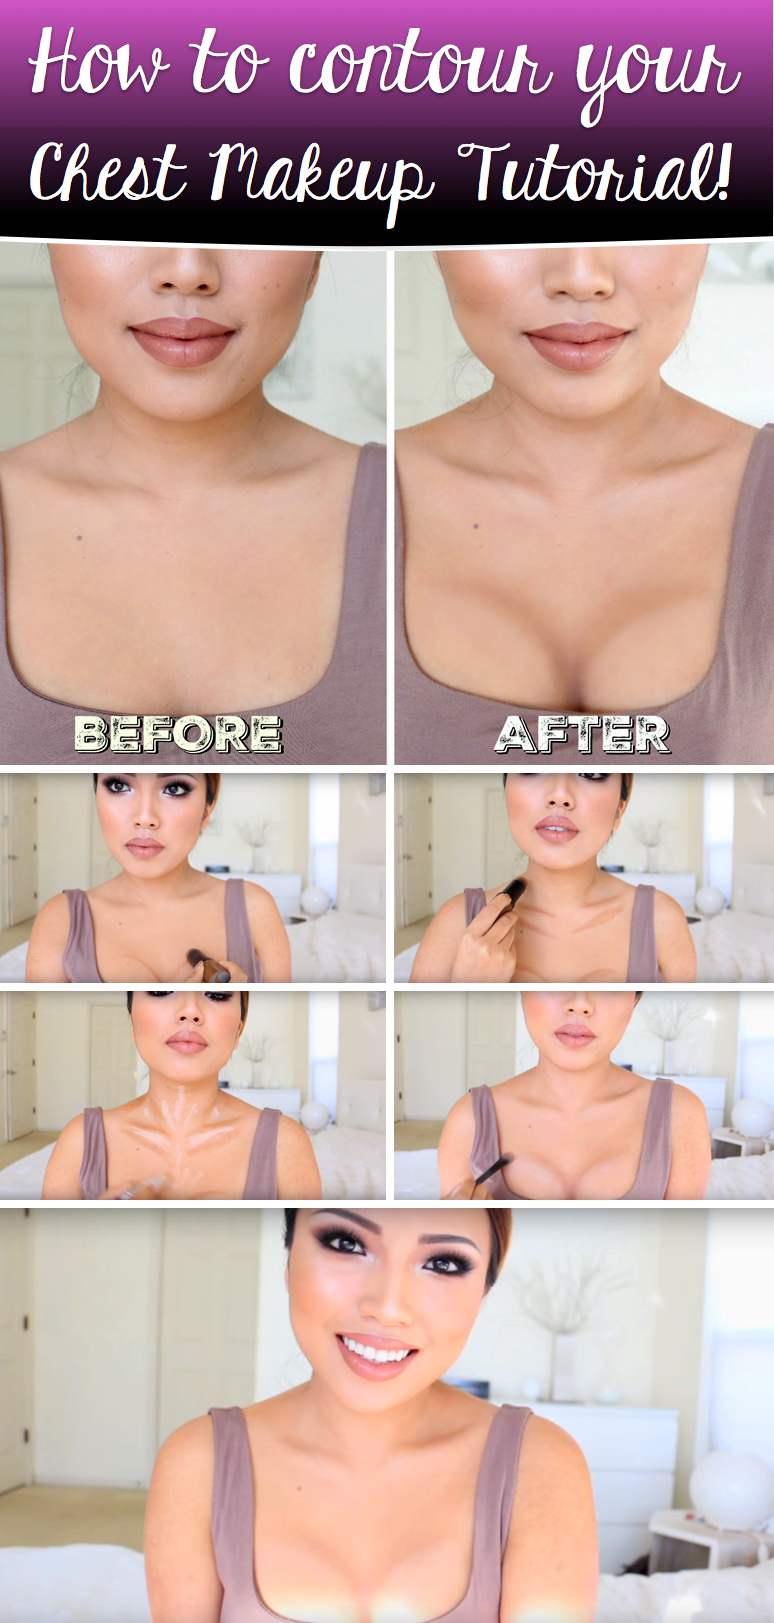 Out of ordinary boobs